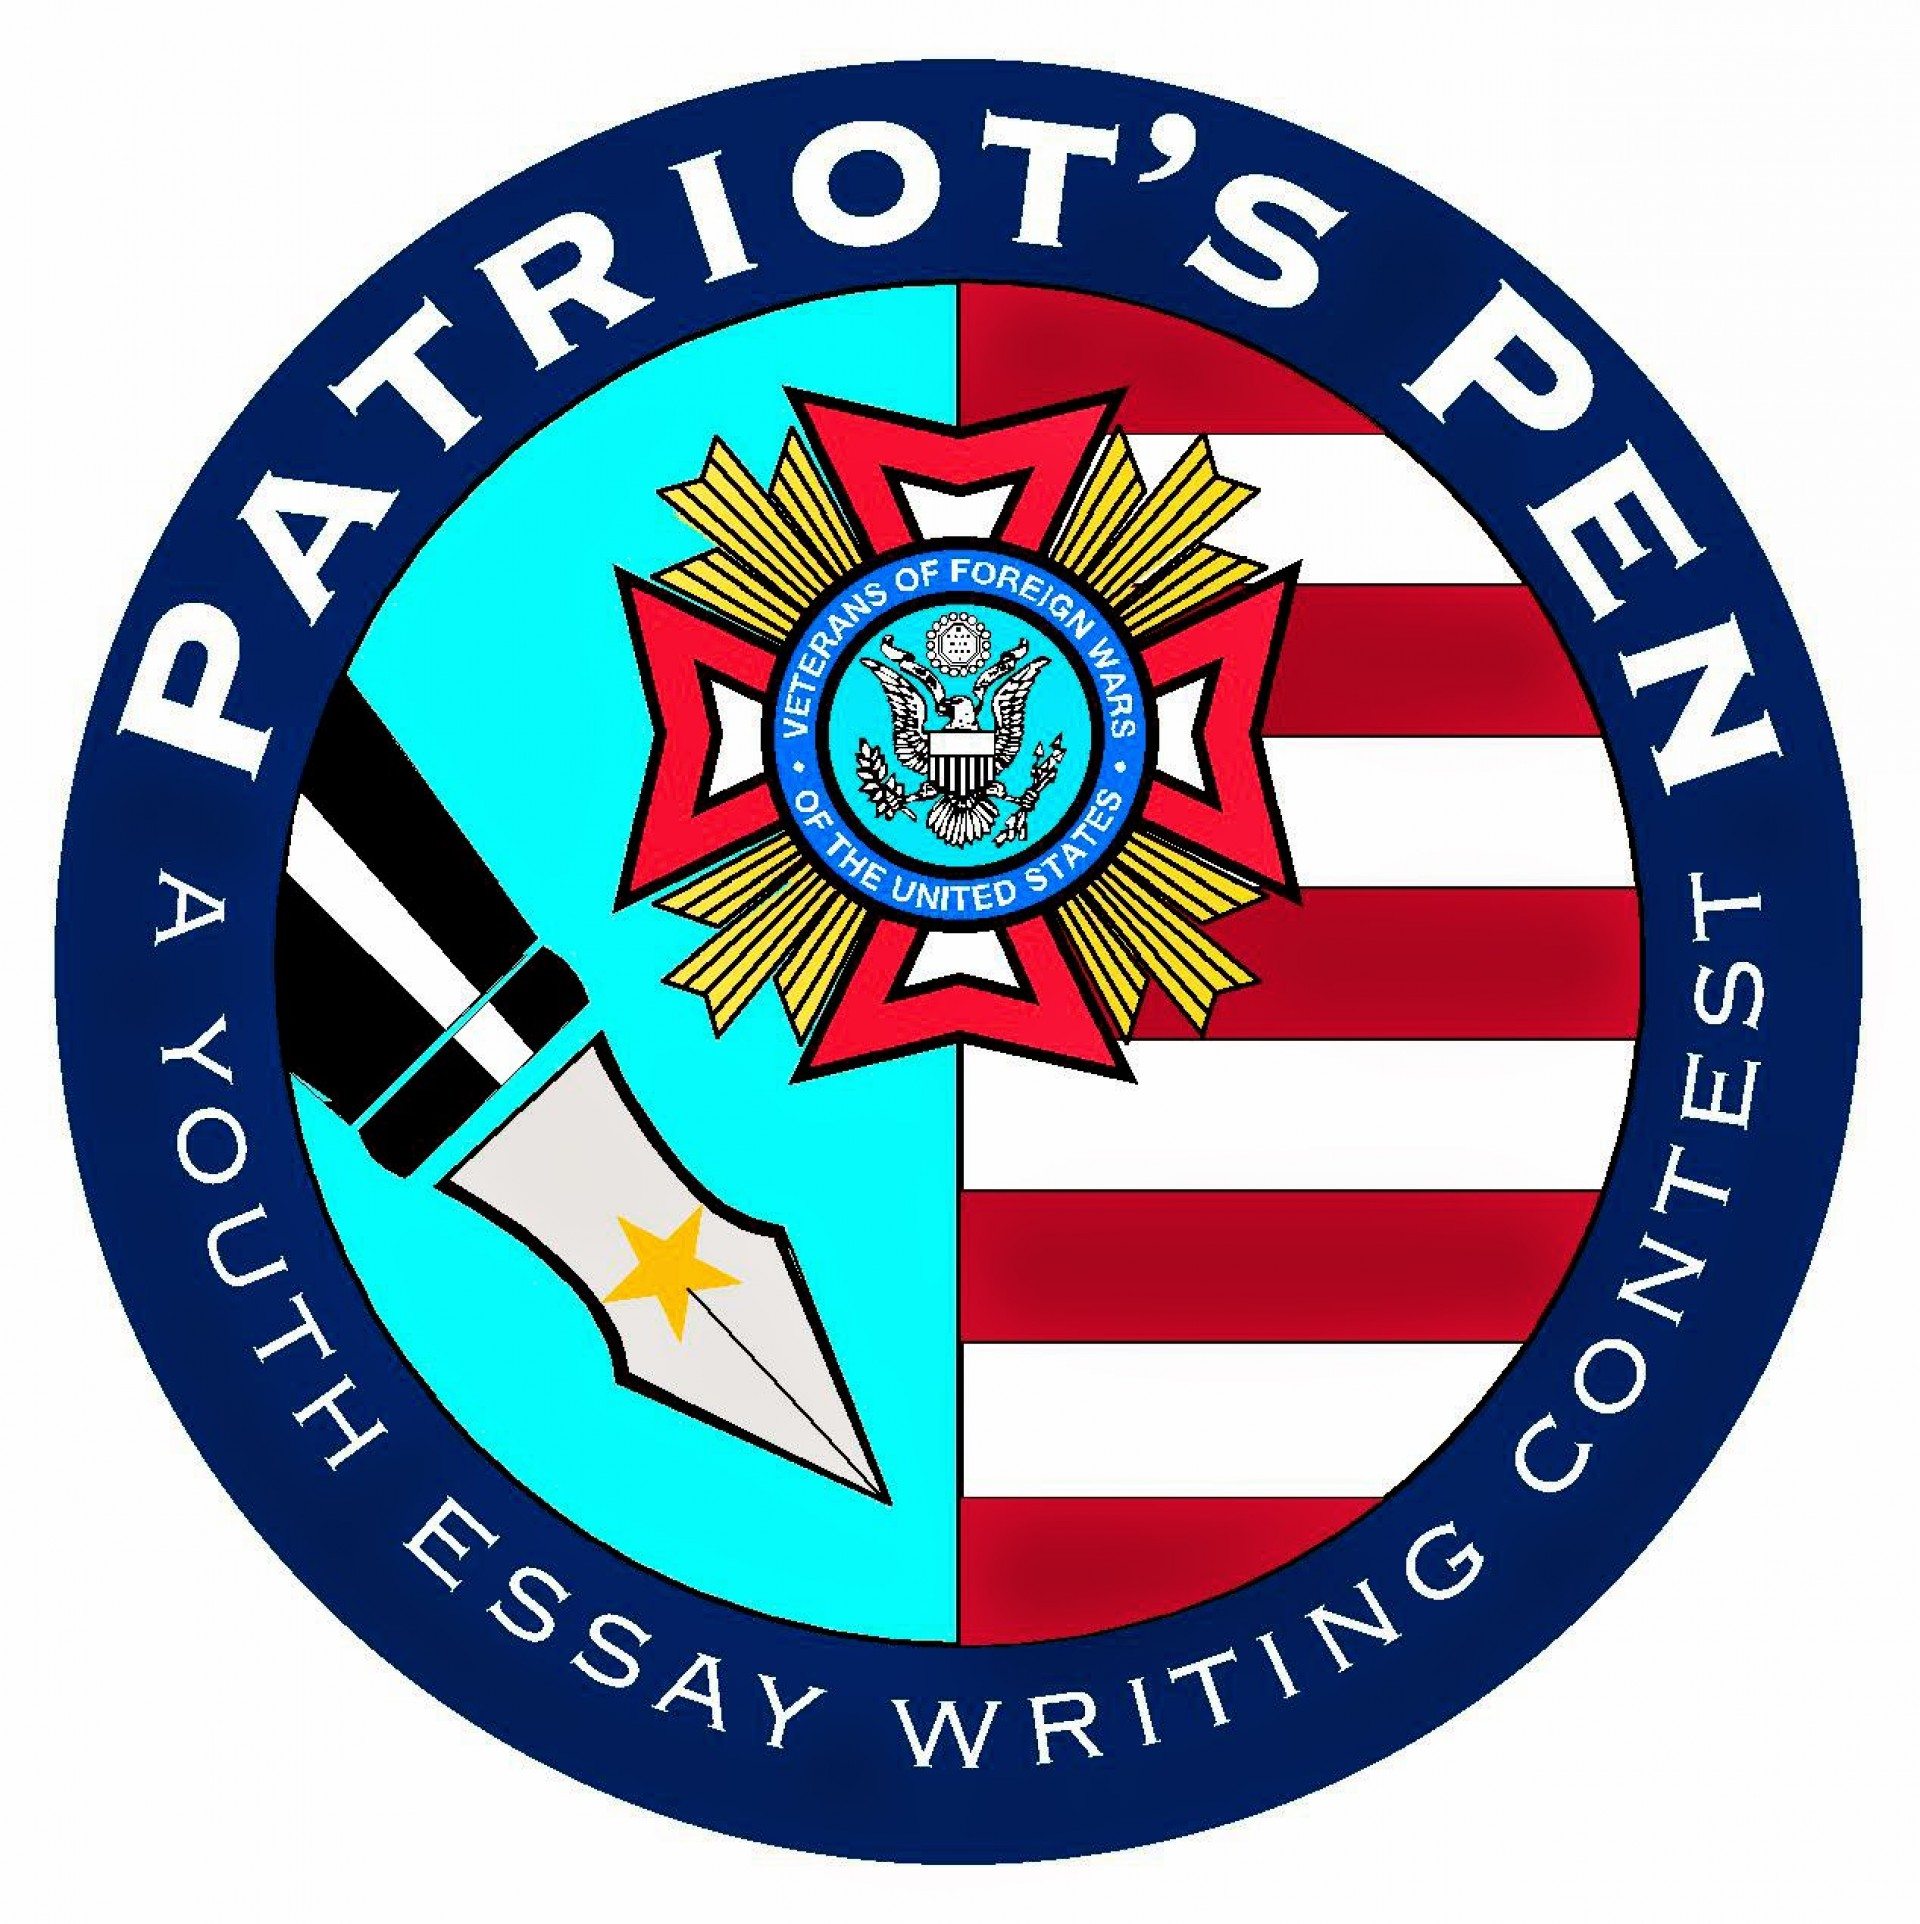 001 Patriots Pen Essay Contest Example Remarkable Patriot's 2018 Winners Vfw Entry Form 1920